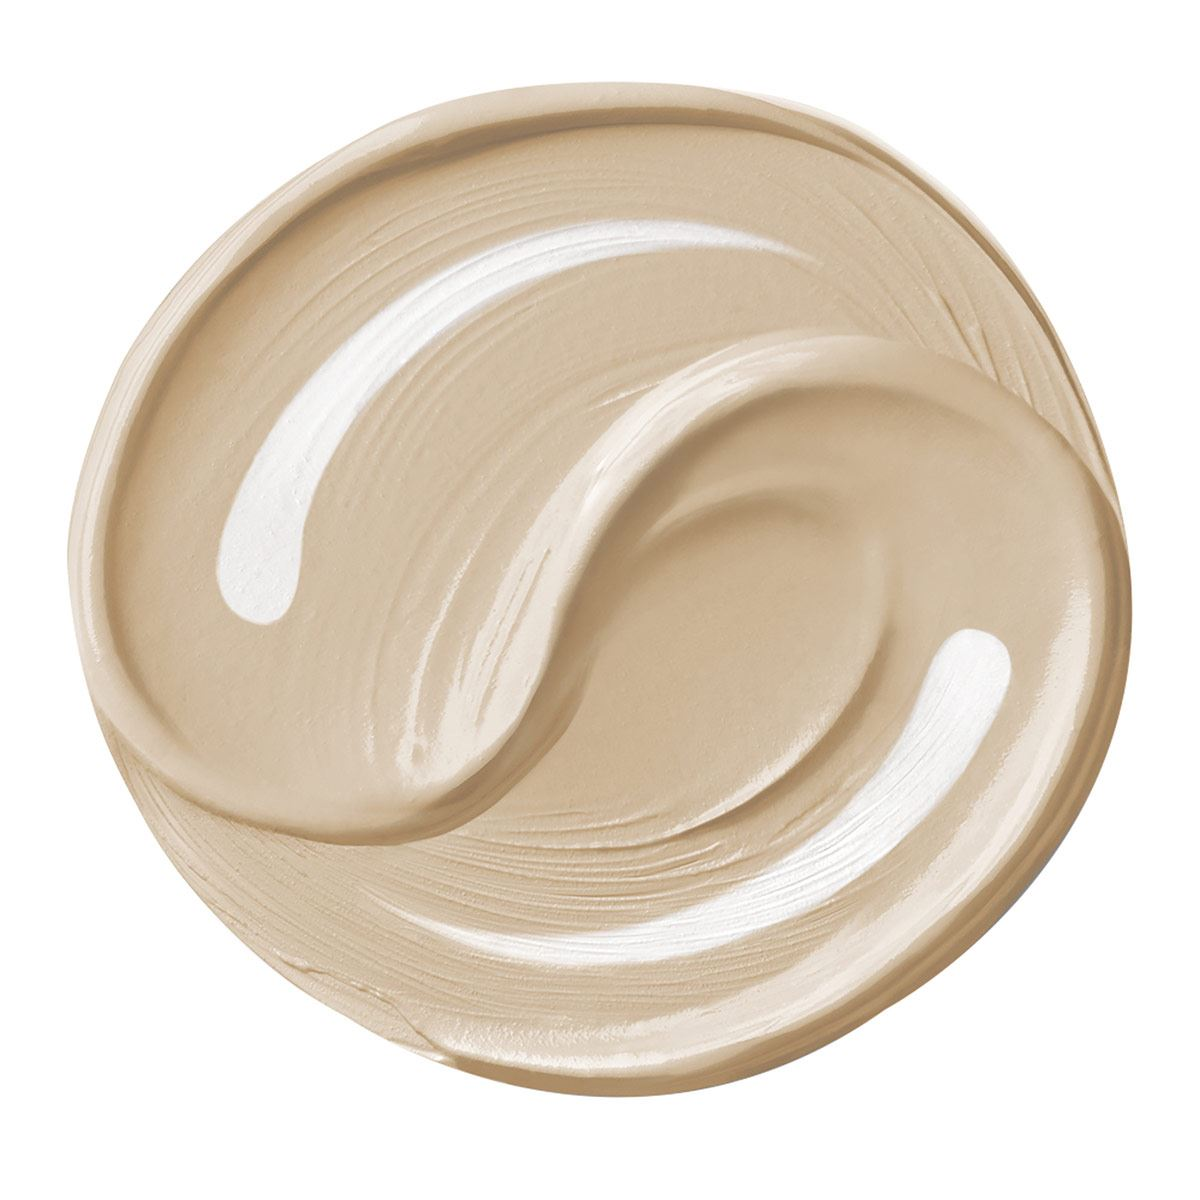 Base de maquillaje crema Covergirl CG + OLAY Simply Ageless Wrinkle Defy 210 Classic Ivory